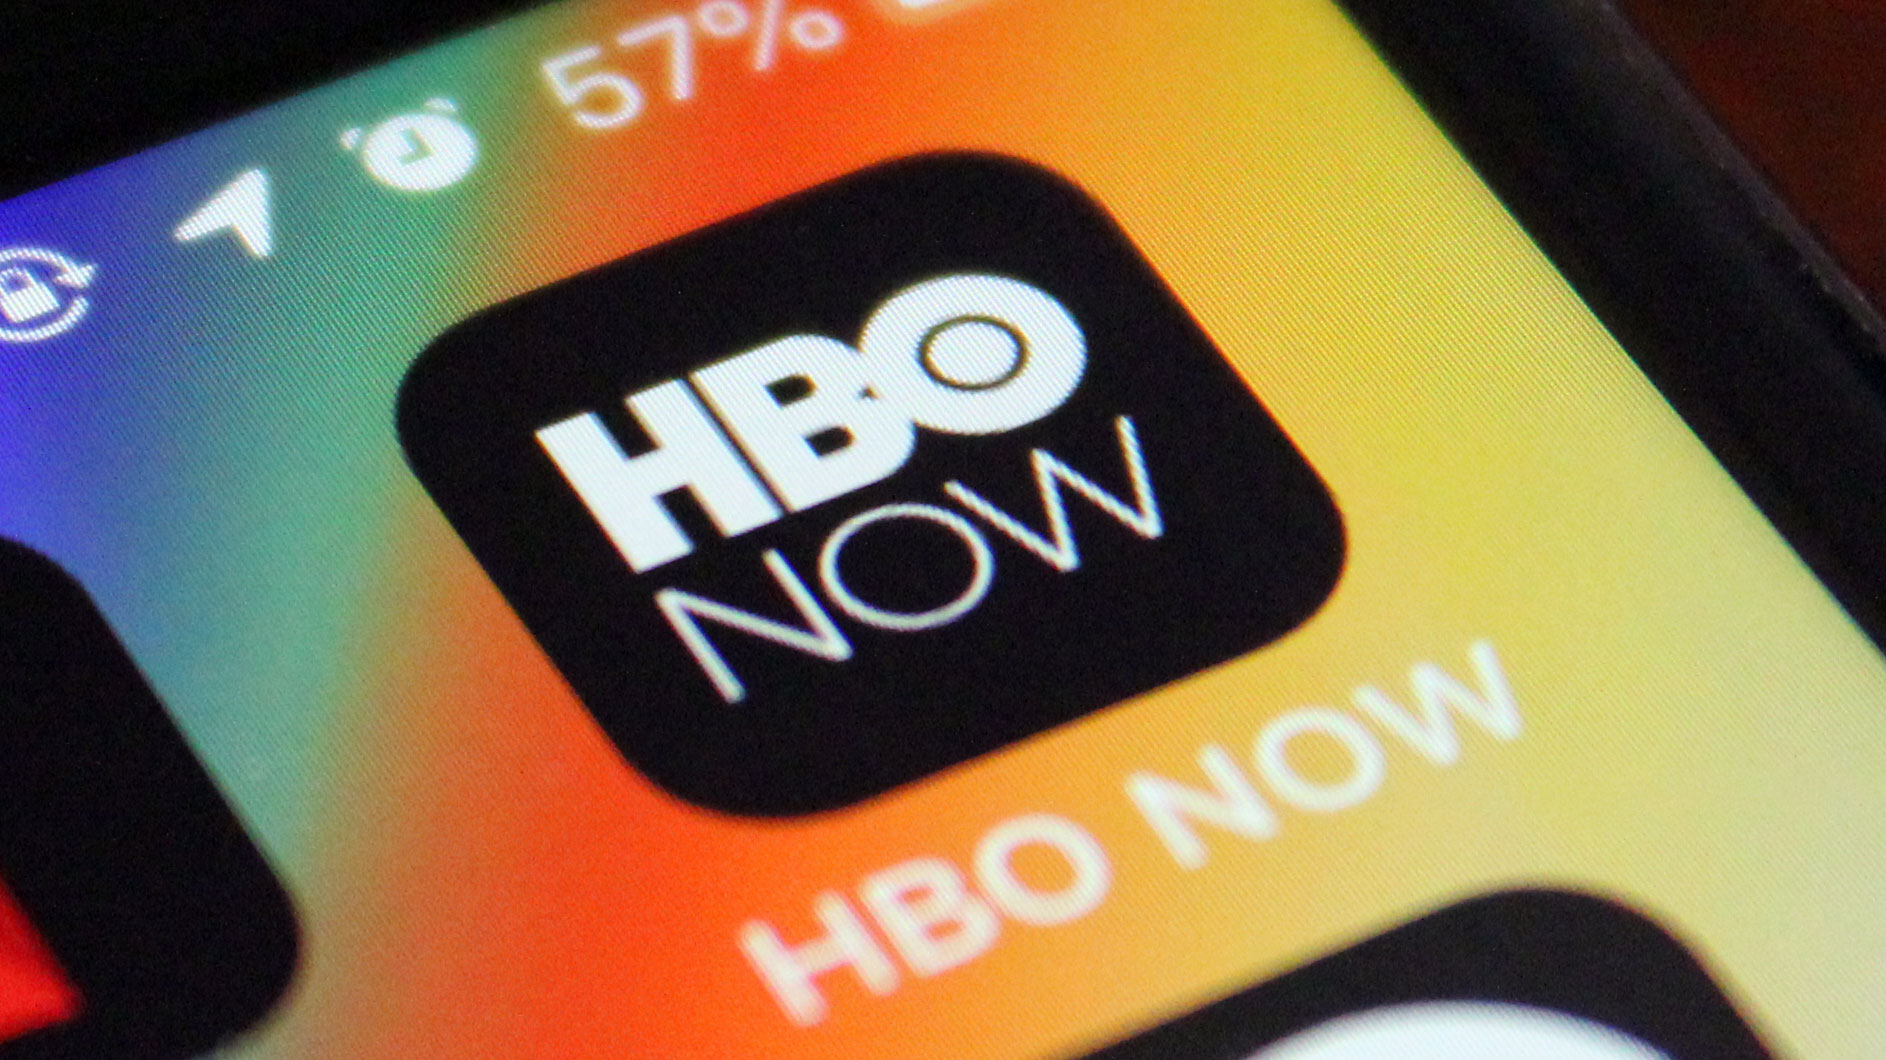 HBO offers hundreds of hours of free programming